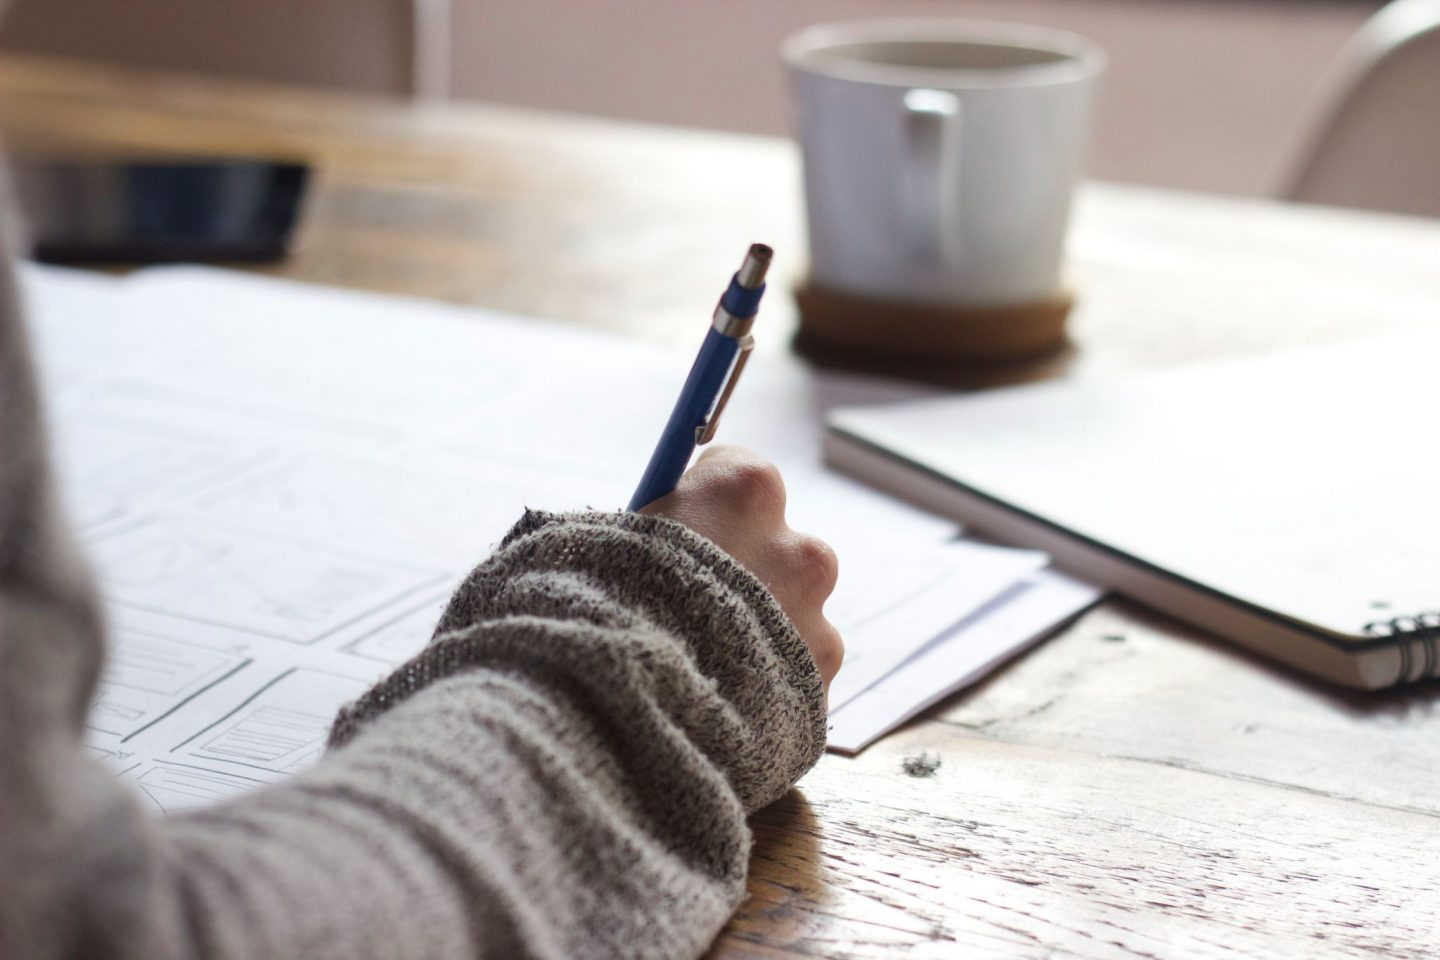 5 WAYS TO FIND THE TOPIC FOR A CREATIVE WRITING ESSAY